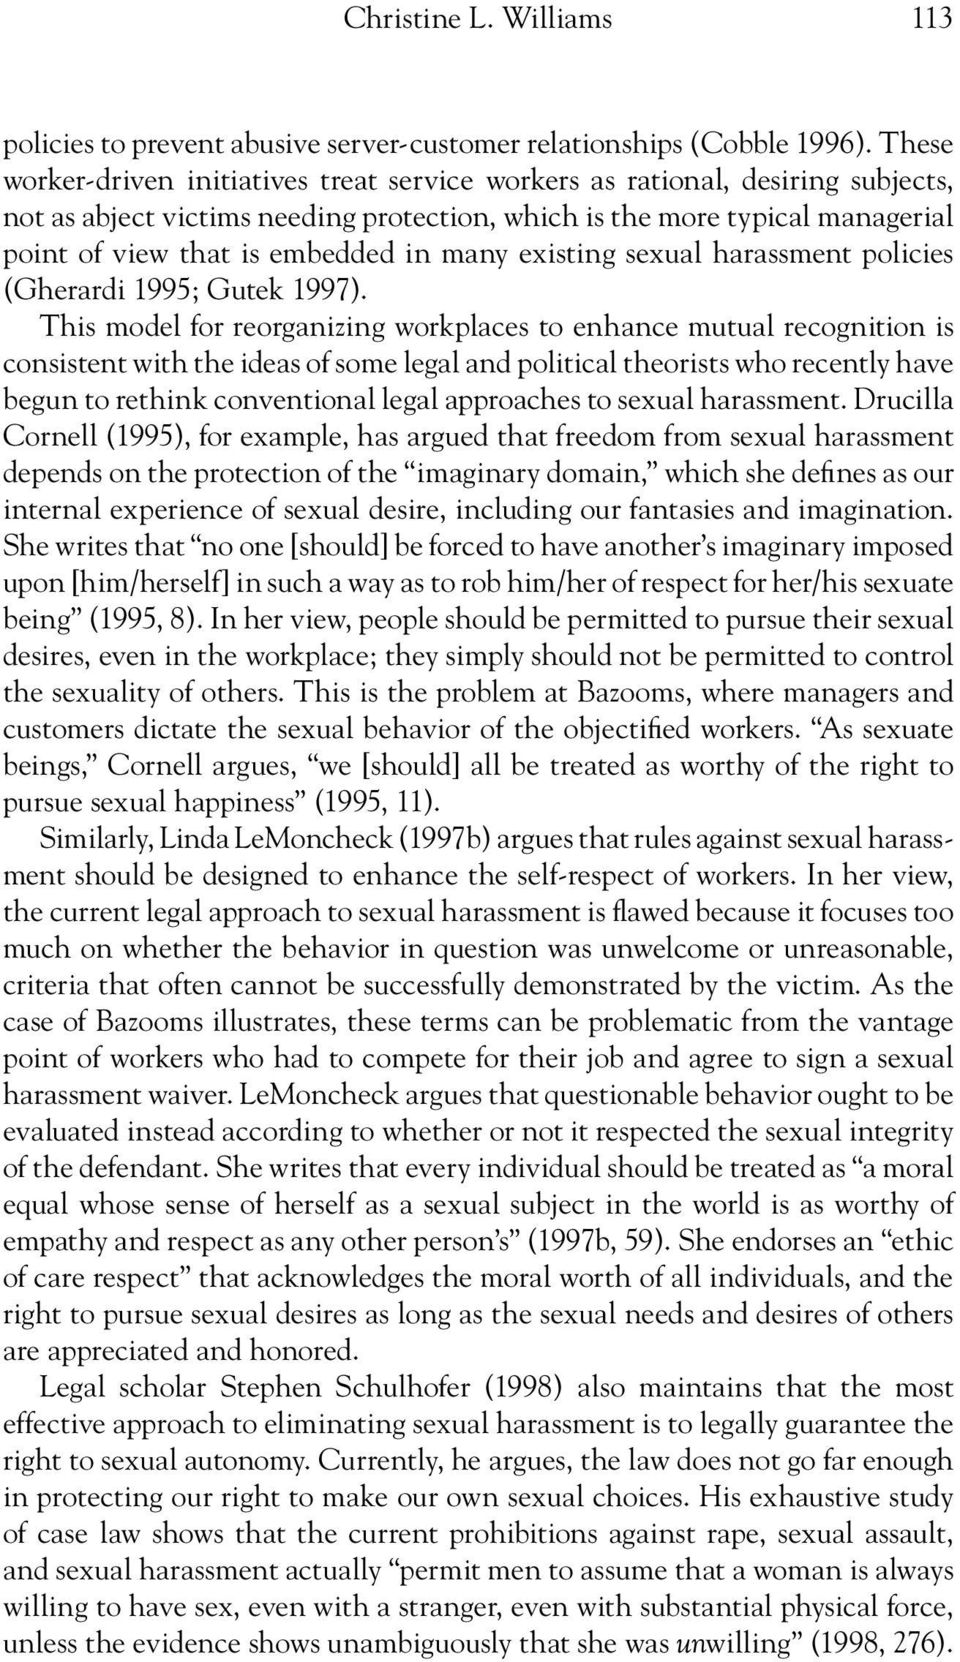 an analysis of sadomasochism in sex Against sadomasochism: a radical feminist analysis is a 1982 radical  for the journal of sex  arguments against sadomasochism in the book to religious arguments .